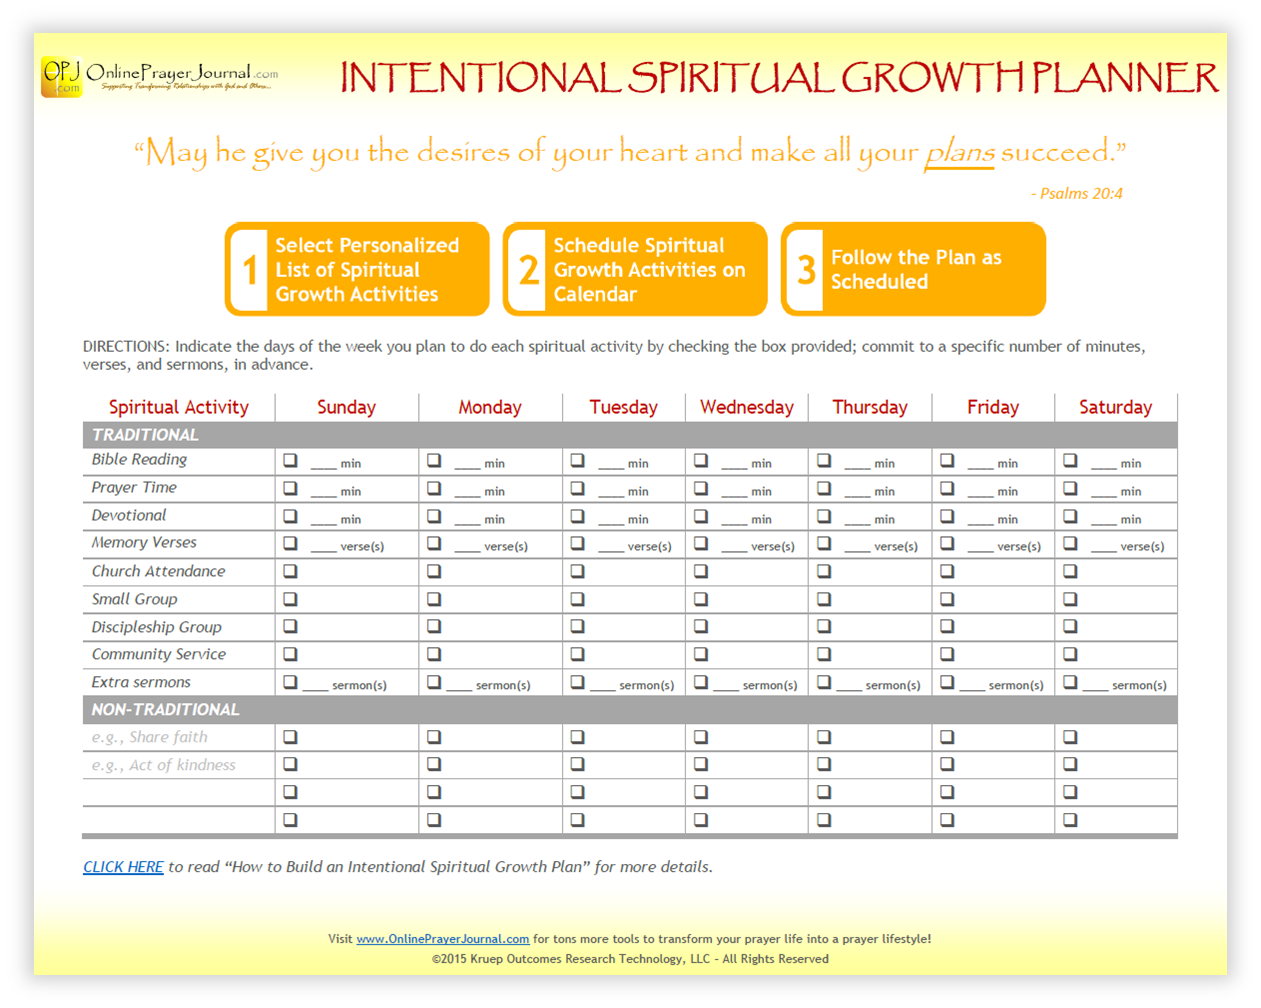 Get free intentional spiritual growth planner intentional spiritual growth plan template image pronofoot35fo Choice Image